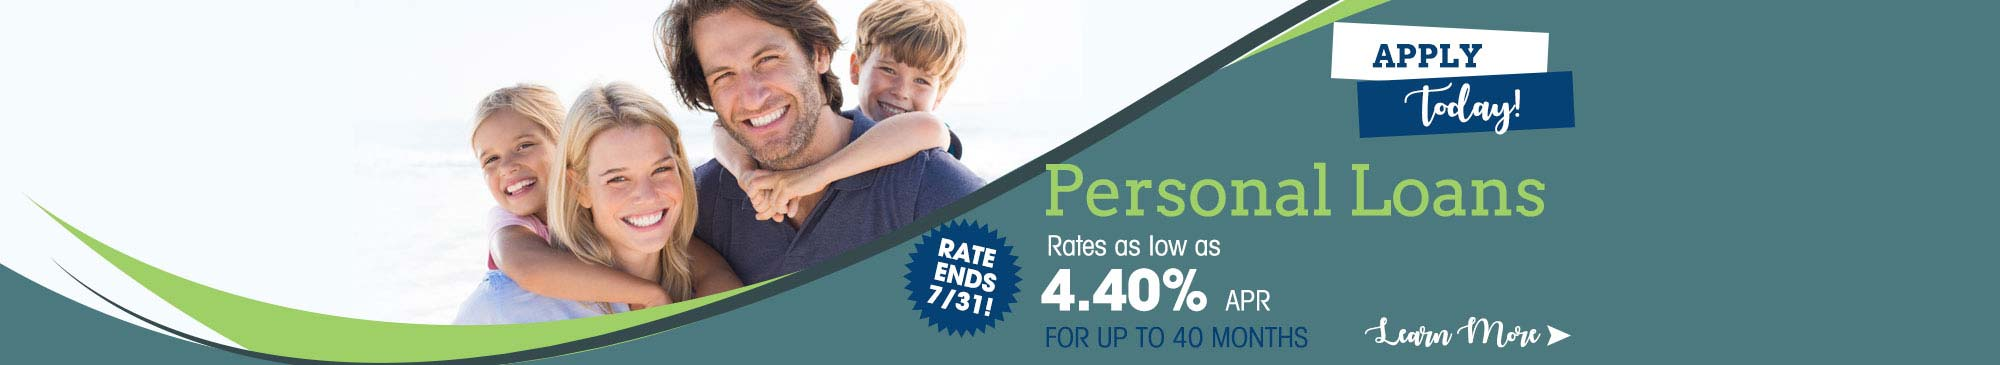 Personal Loans - as low as 4.40%